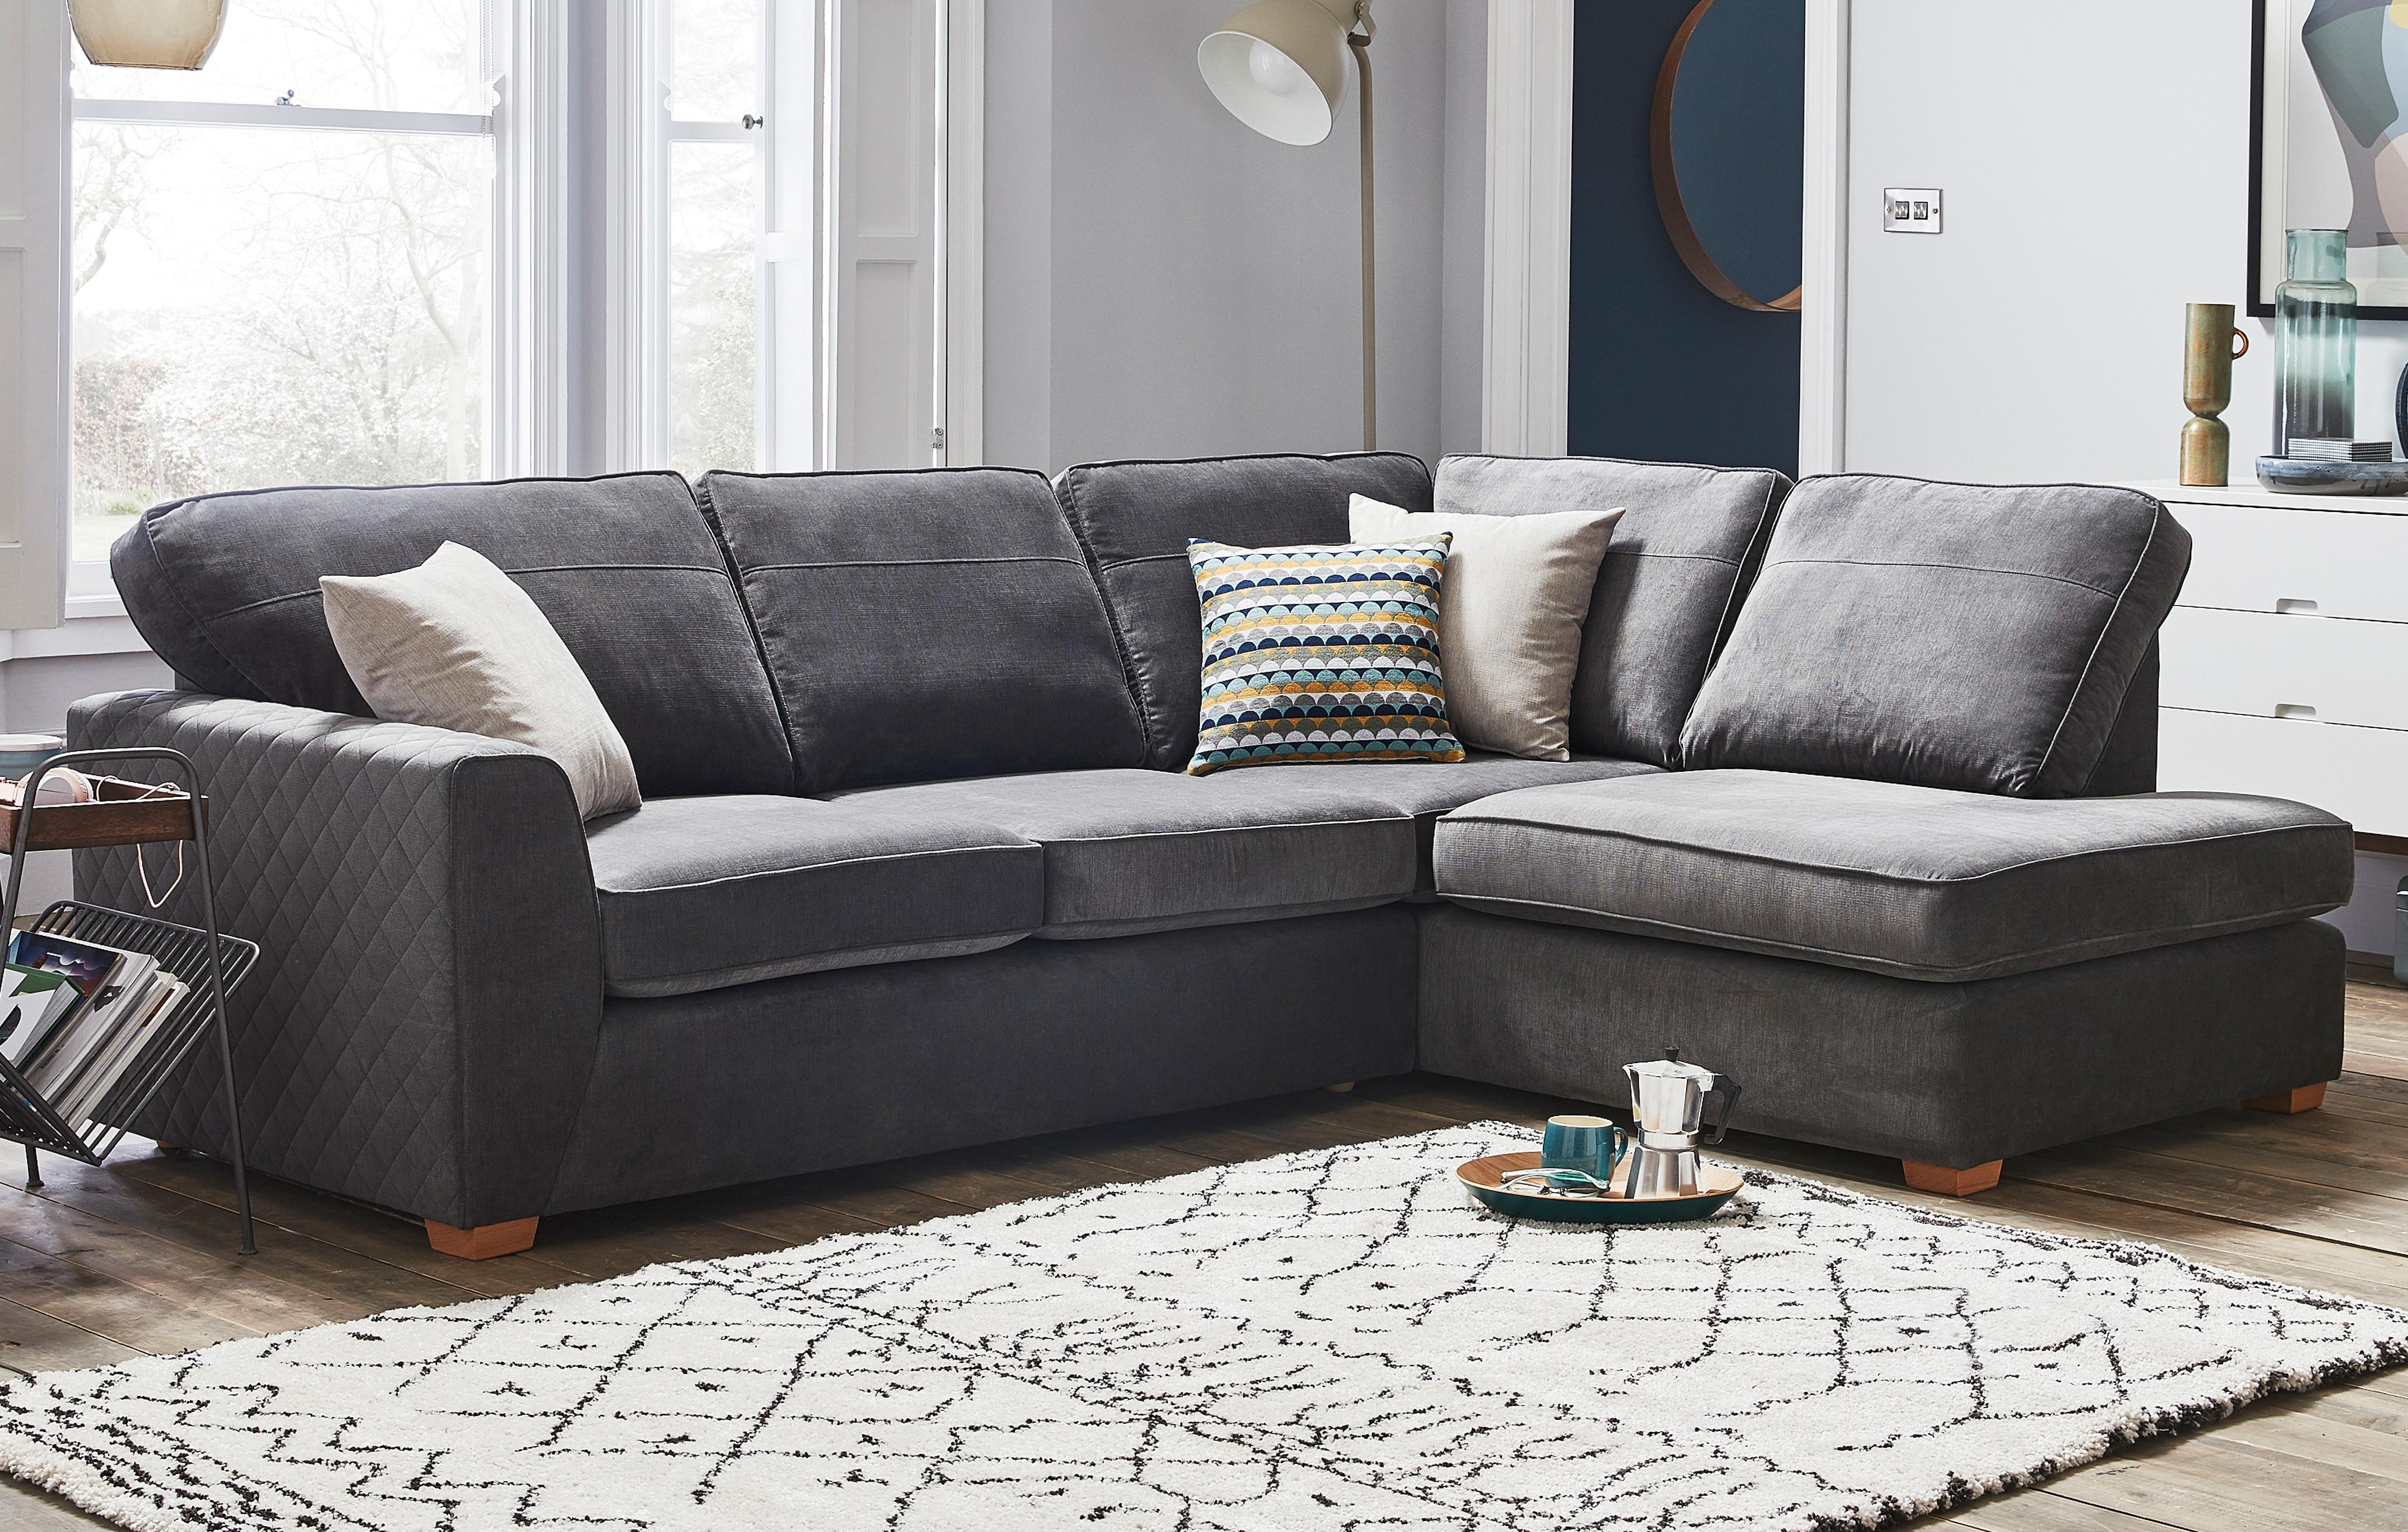 Alpha Sofa Group See Our Full Range Of Quality Fabric Sofas Ireland Dfs Ireland